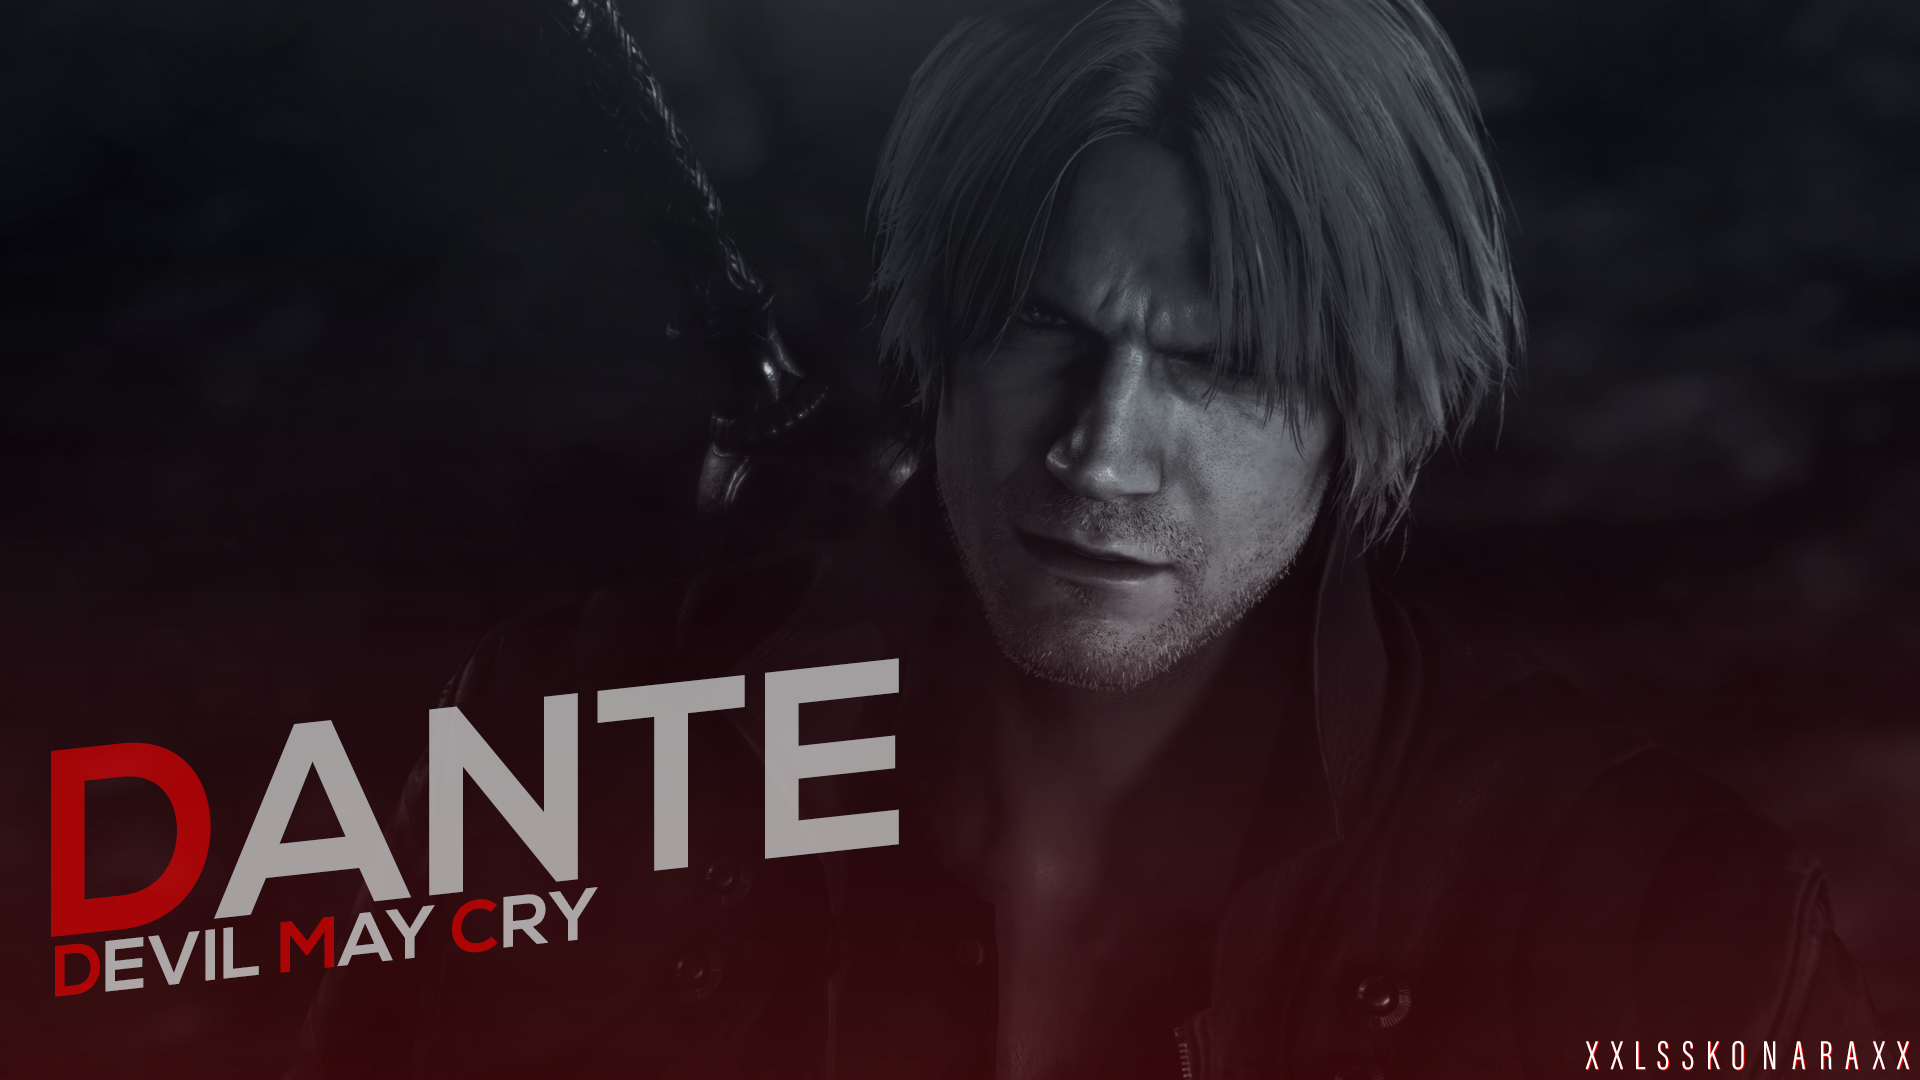 Dante Devil May Cry 5 Devil May Cry Wallpaper 41820799